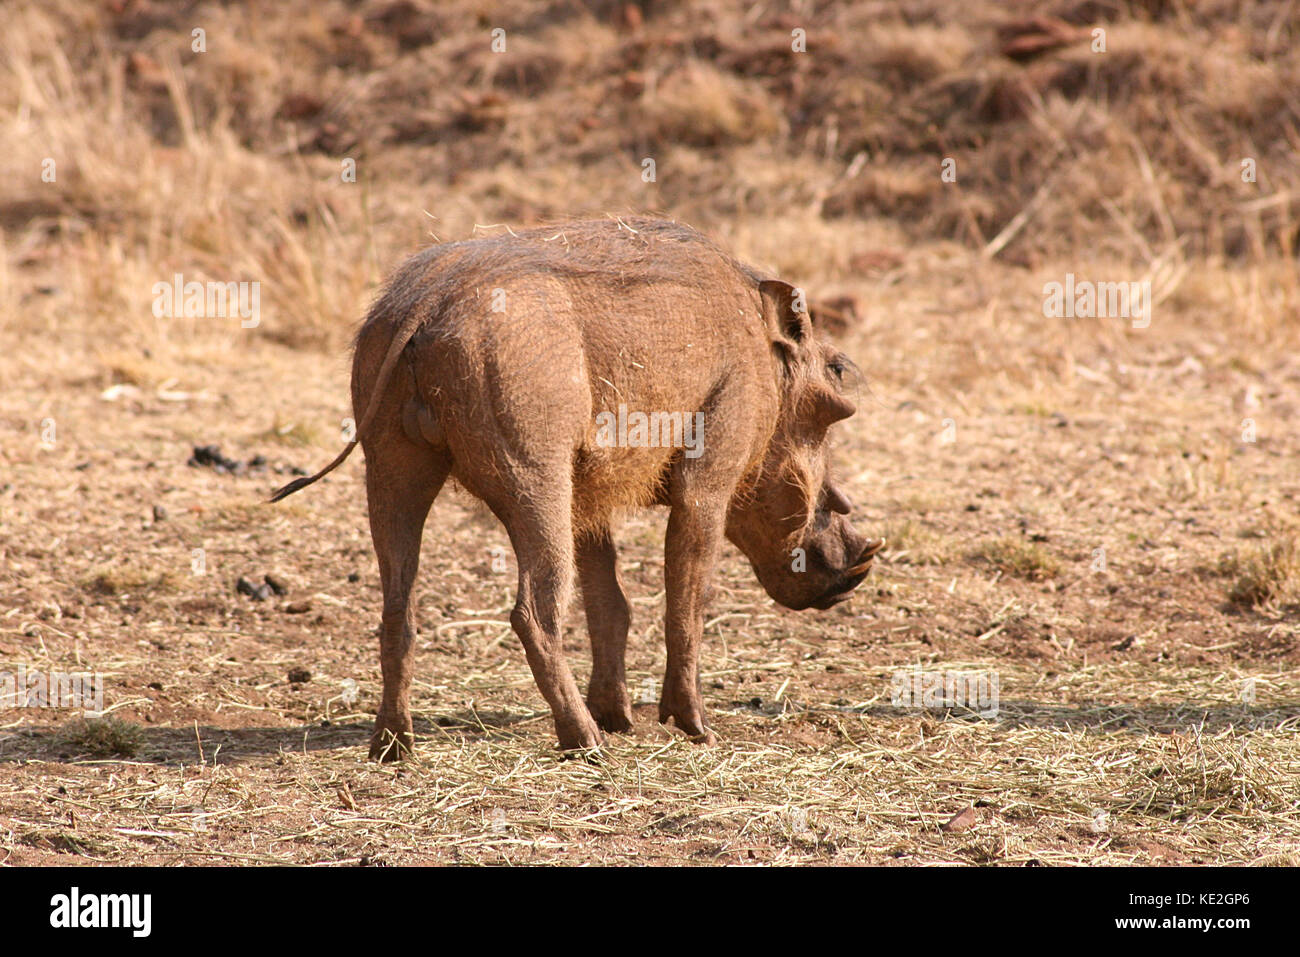 Warthog on a game reserve in Gauteng Province, South Africa - Stock Image